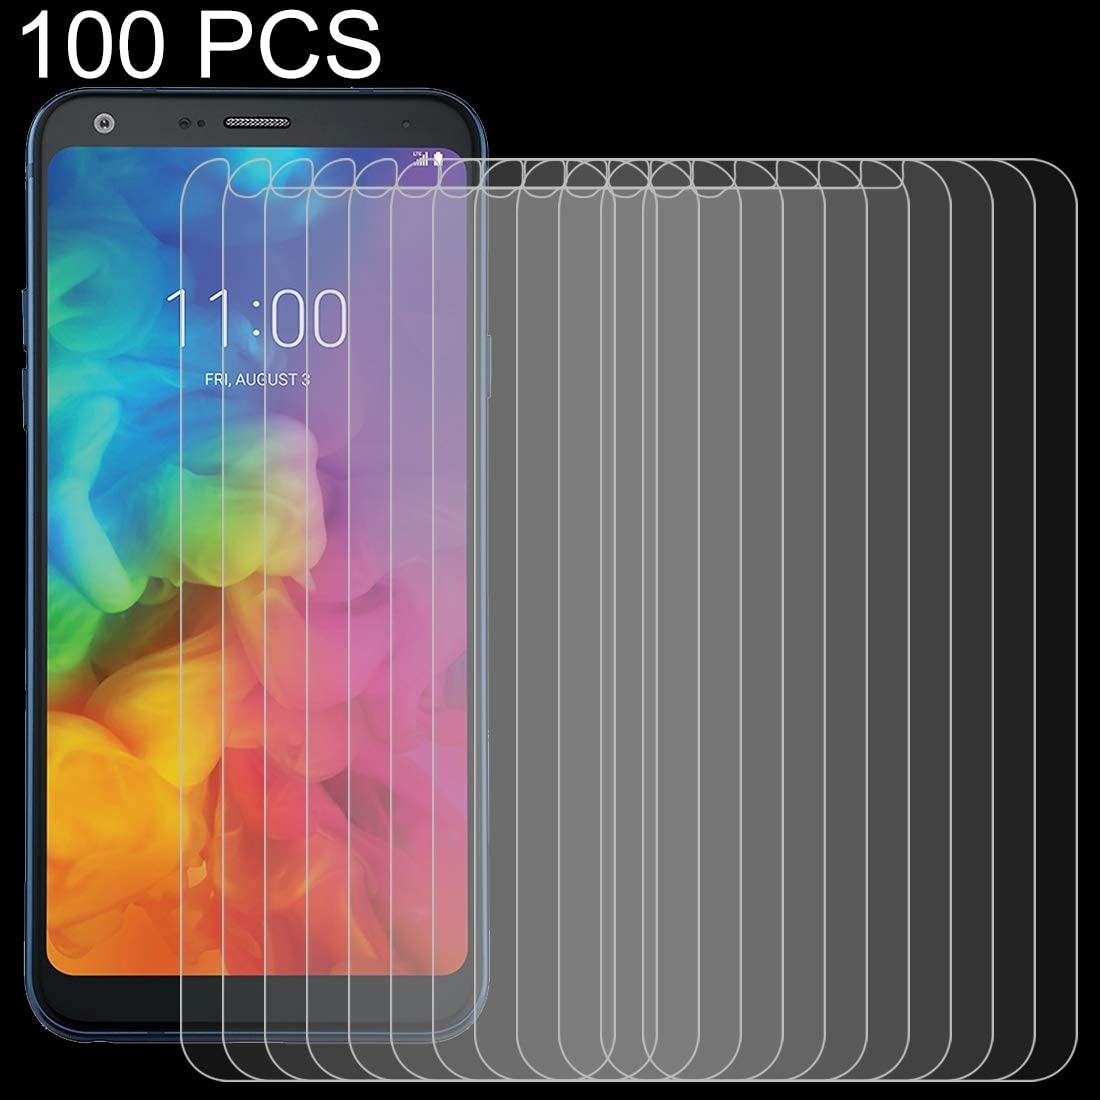 YINZHI Screen Protector Film 100 PCS 0.26mm 9H 2.5D Transparent Transparent Tempered Glass Film for Huawei Mate 20 X Clear